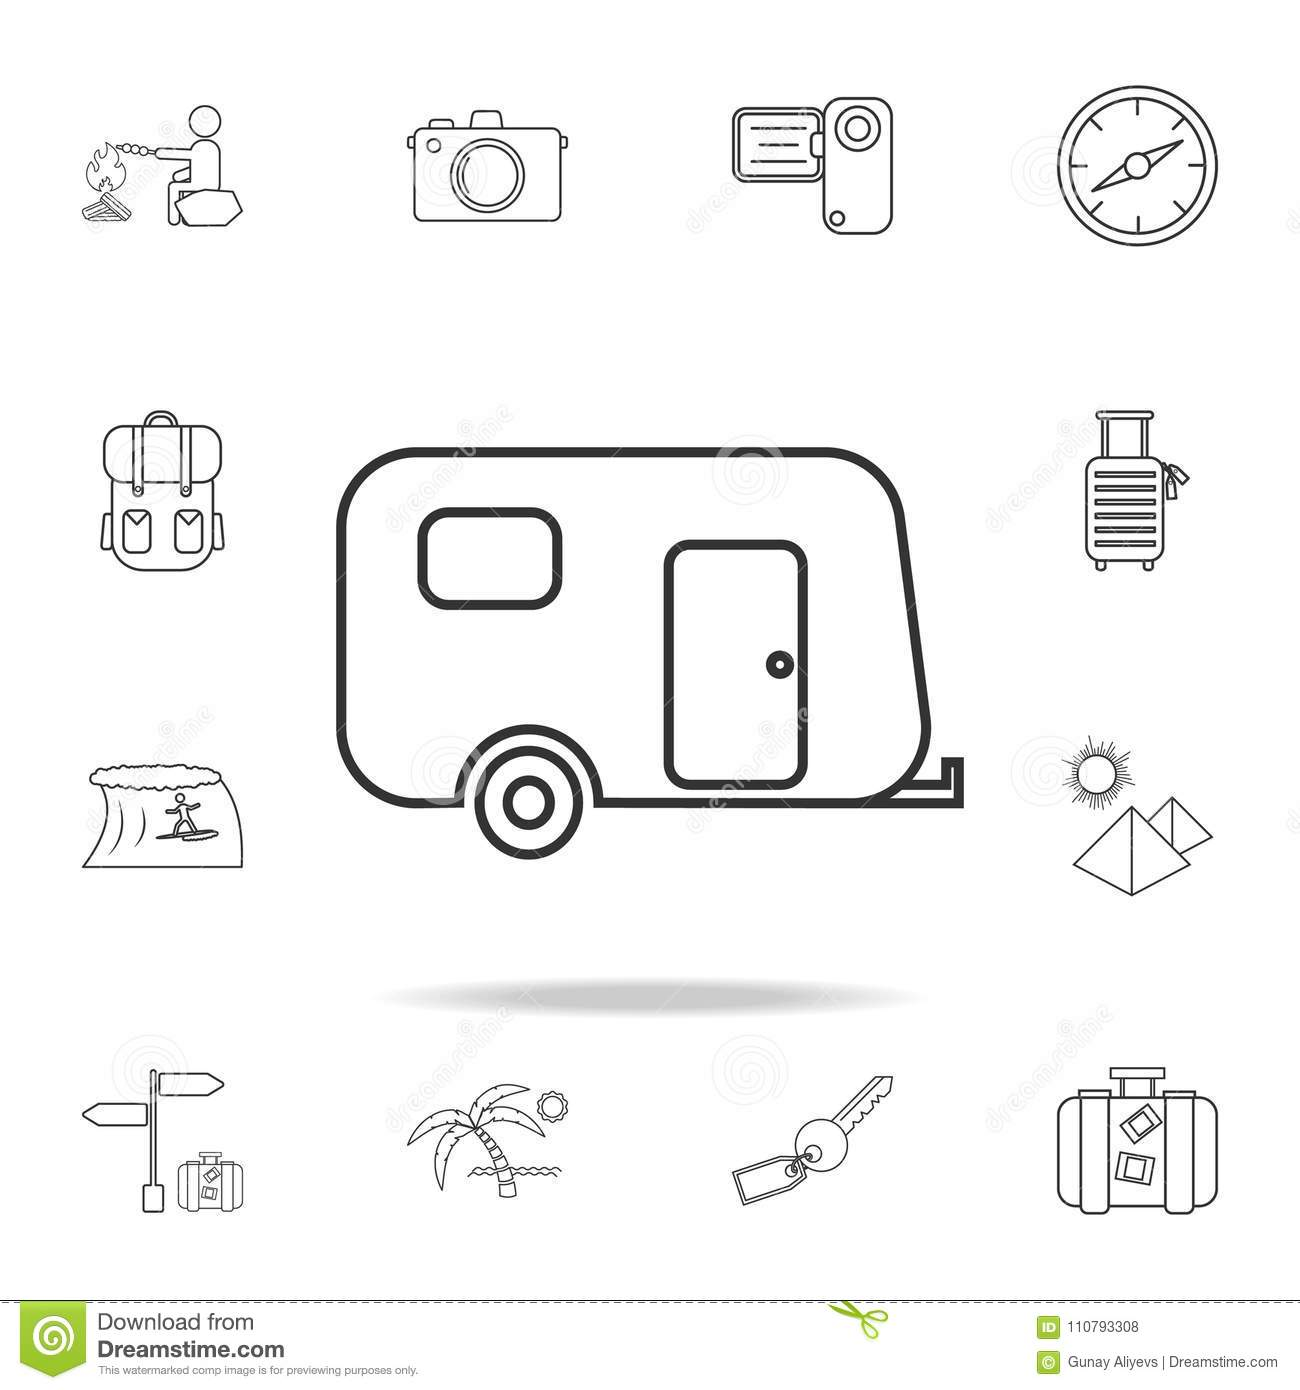 Camping trailer line icon. Set of Tourism and Leisure icons. Signs, outline furniture collection, simple thin line icons for websi